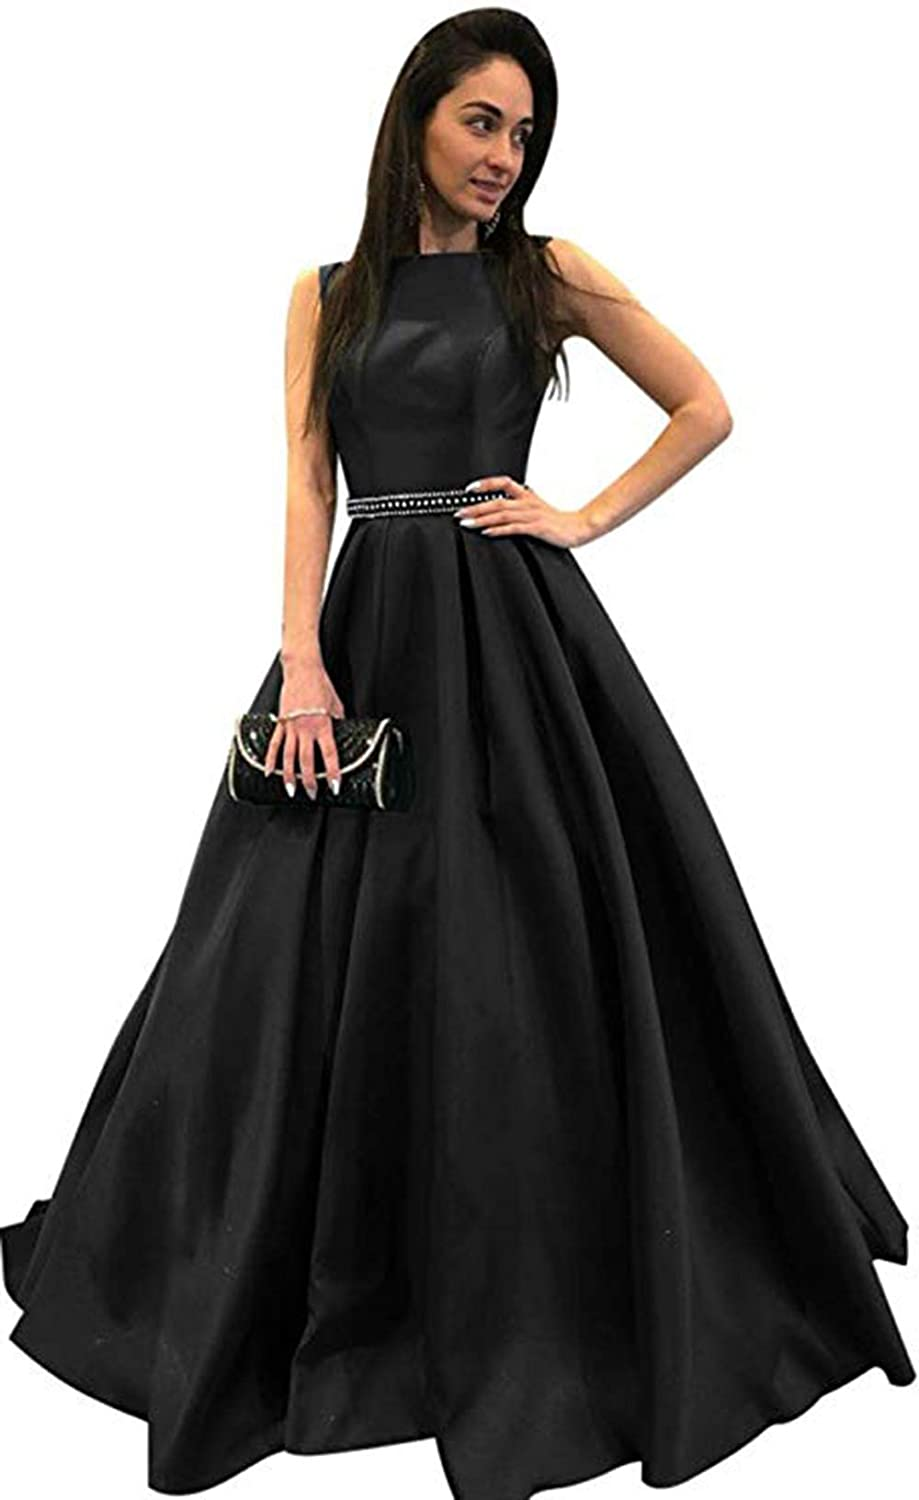 Black Ri Yun Womens Scoop Neck Long Prom Dresses 2019 Backless Beaded ALine Satin Formal Evening Ball Gowns with Pockets